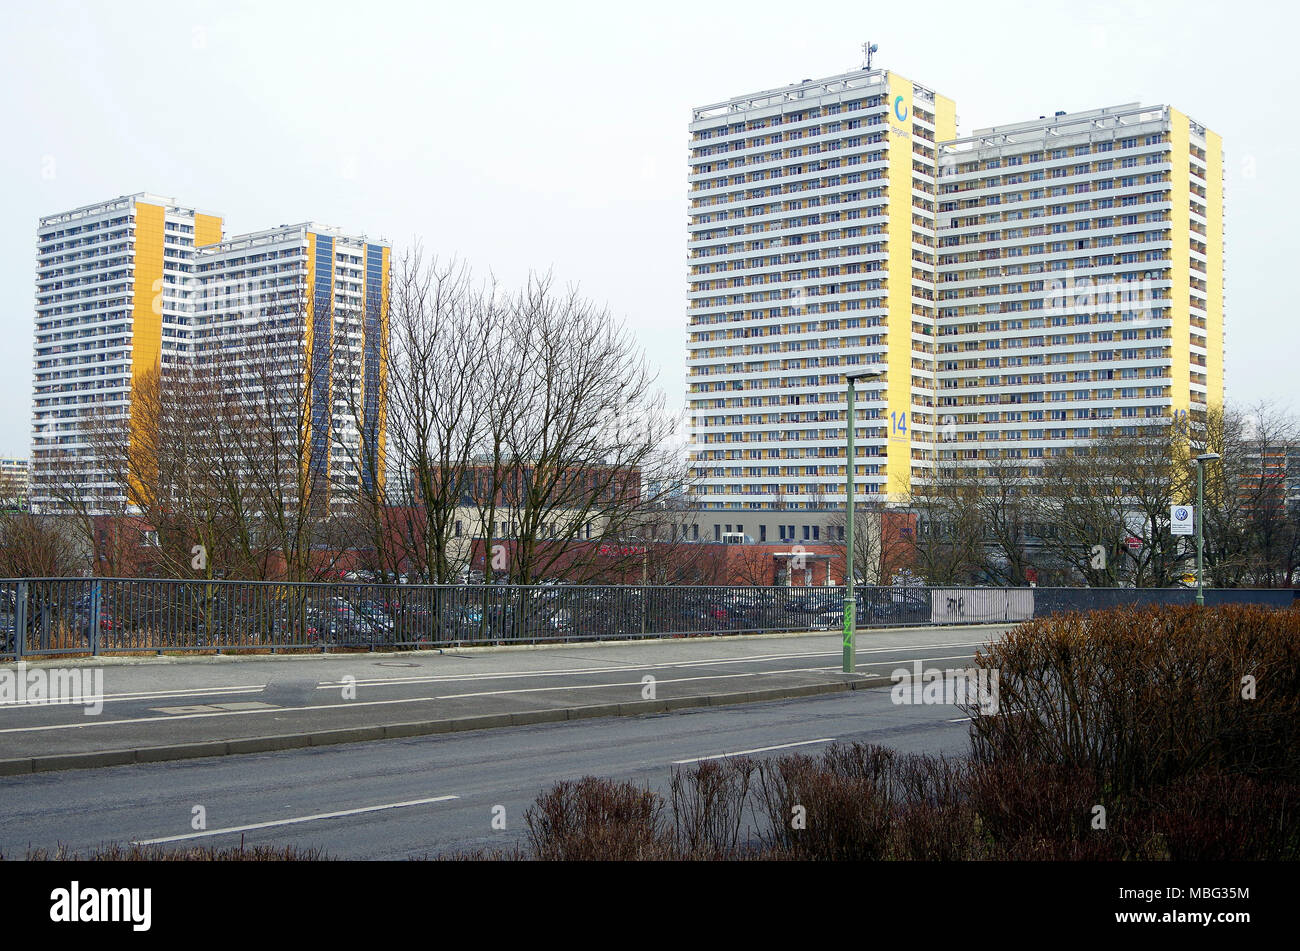 Three 22 and 25 storey DDR double apartment blocks owned by dewego state-owned housing company at Helene Weigel Platz, Springpfuhl, Berlin - Stock Image